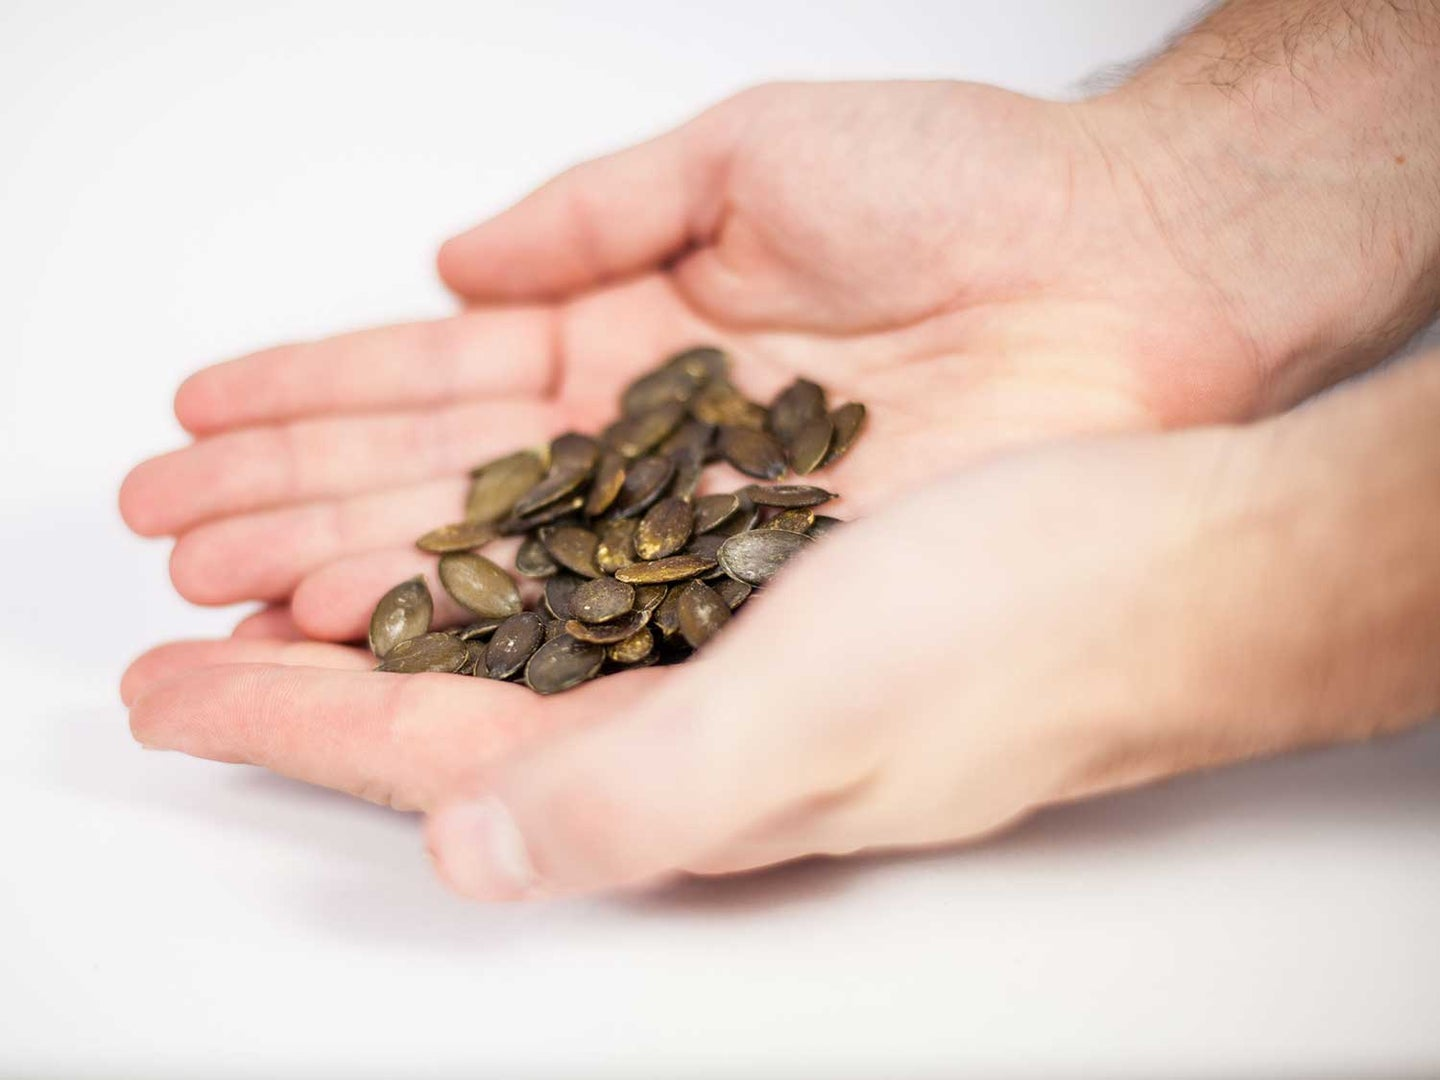 Pumpkin seeds washed, dried, and cleaned so they are shelf-stable for up to two years.